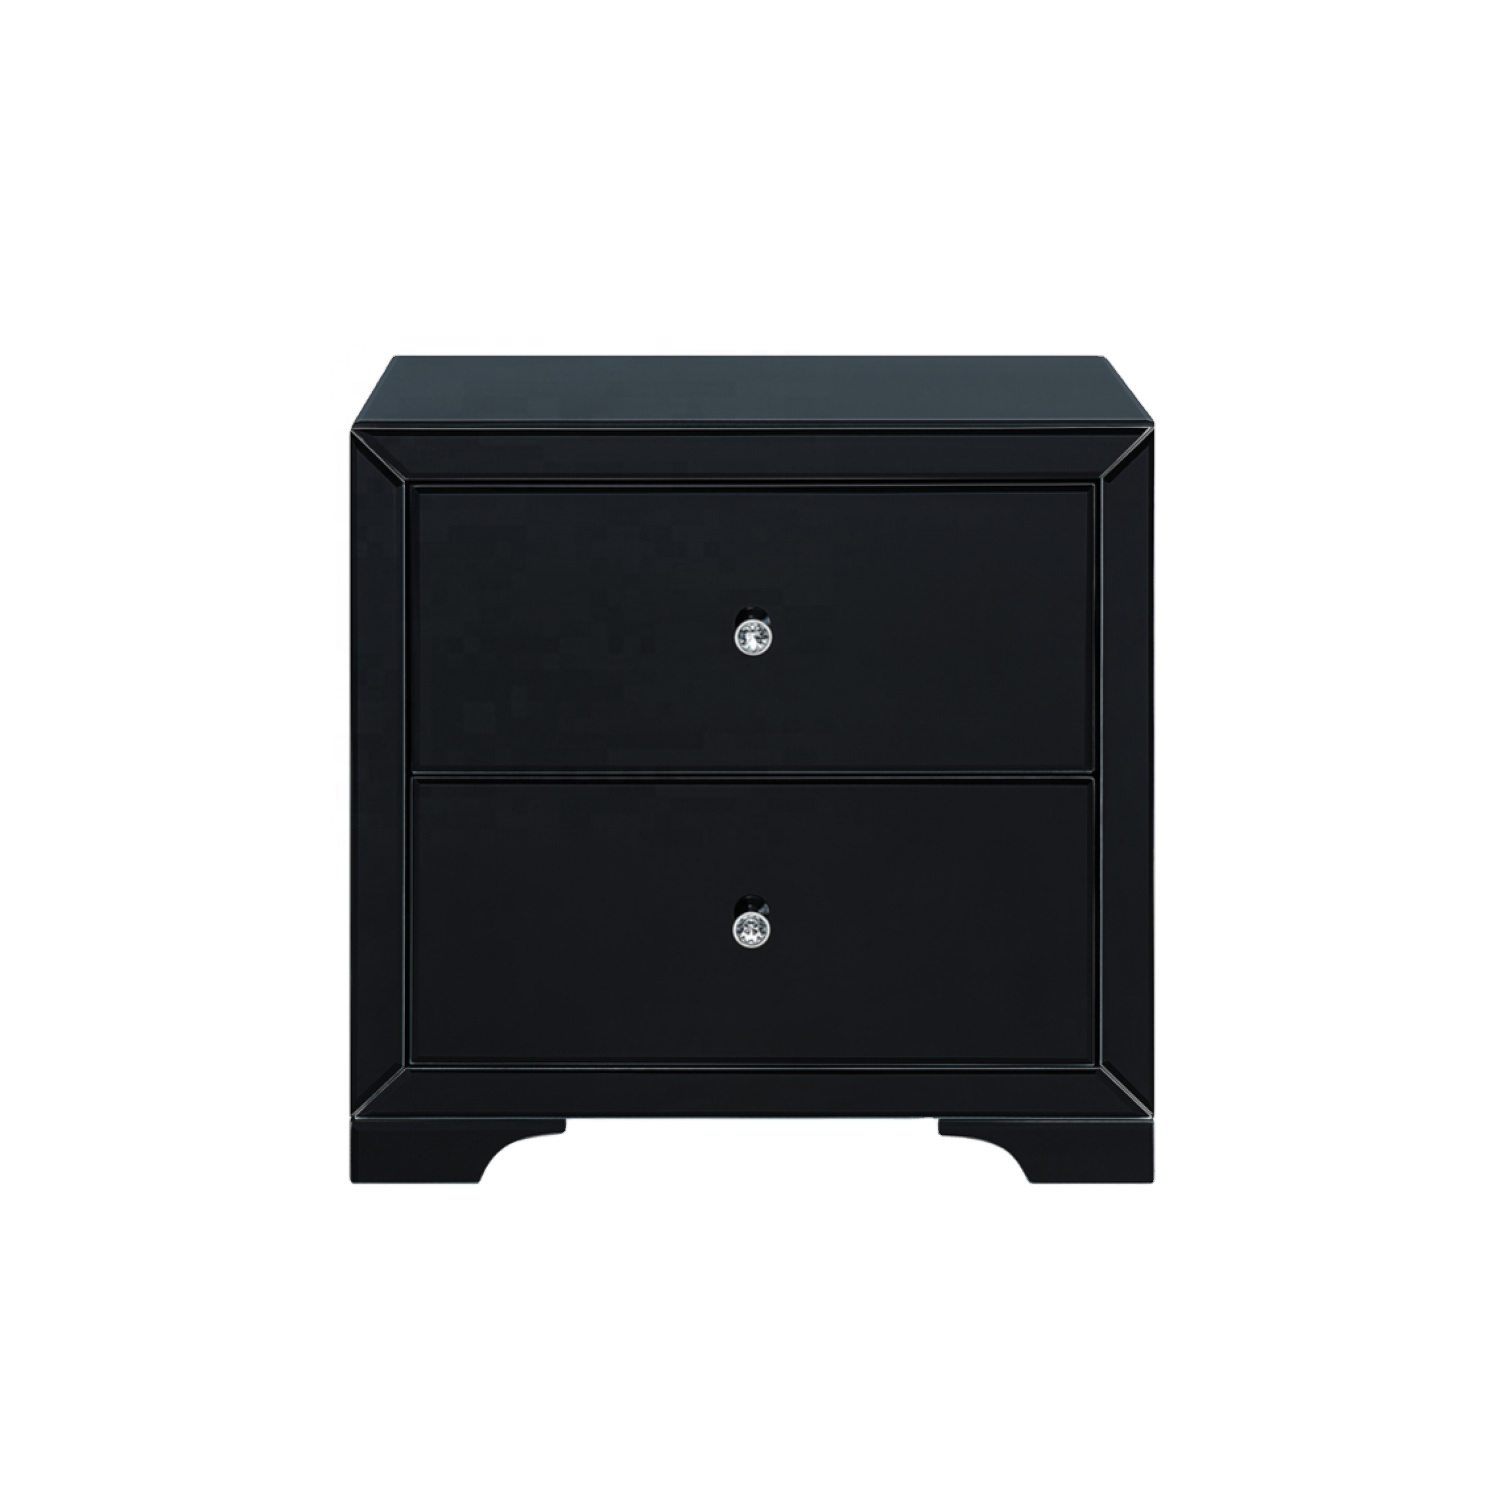 Modern Black Mirrored Nightstand Bedside Table With 2 Drawers Buy Roma Glass Storage Simple New Design Night Stand Cabinet Bedroom Smoke Grey Lamp